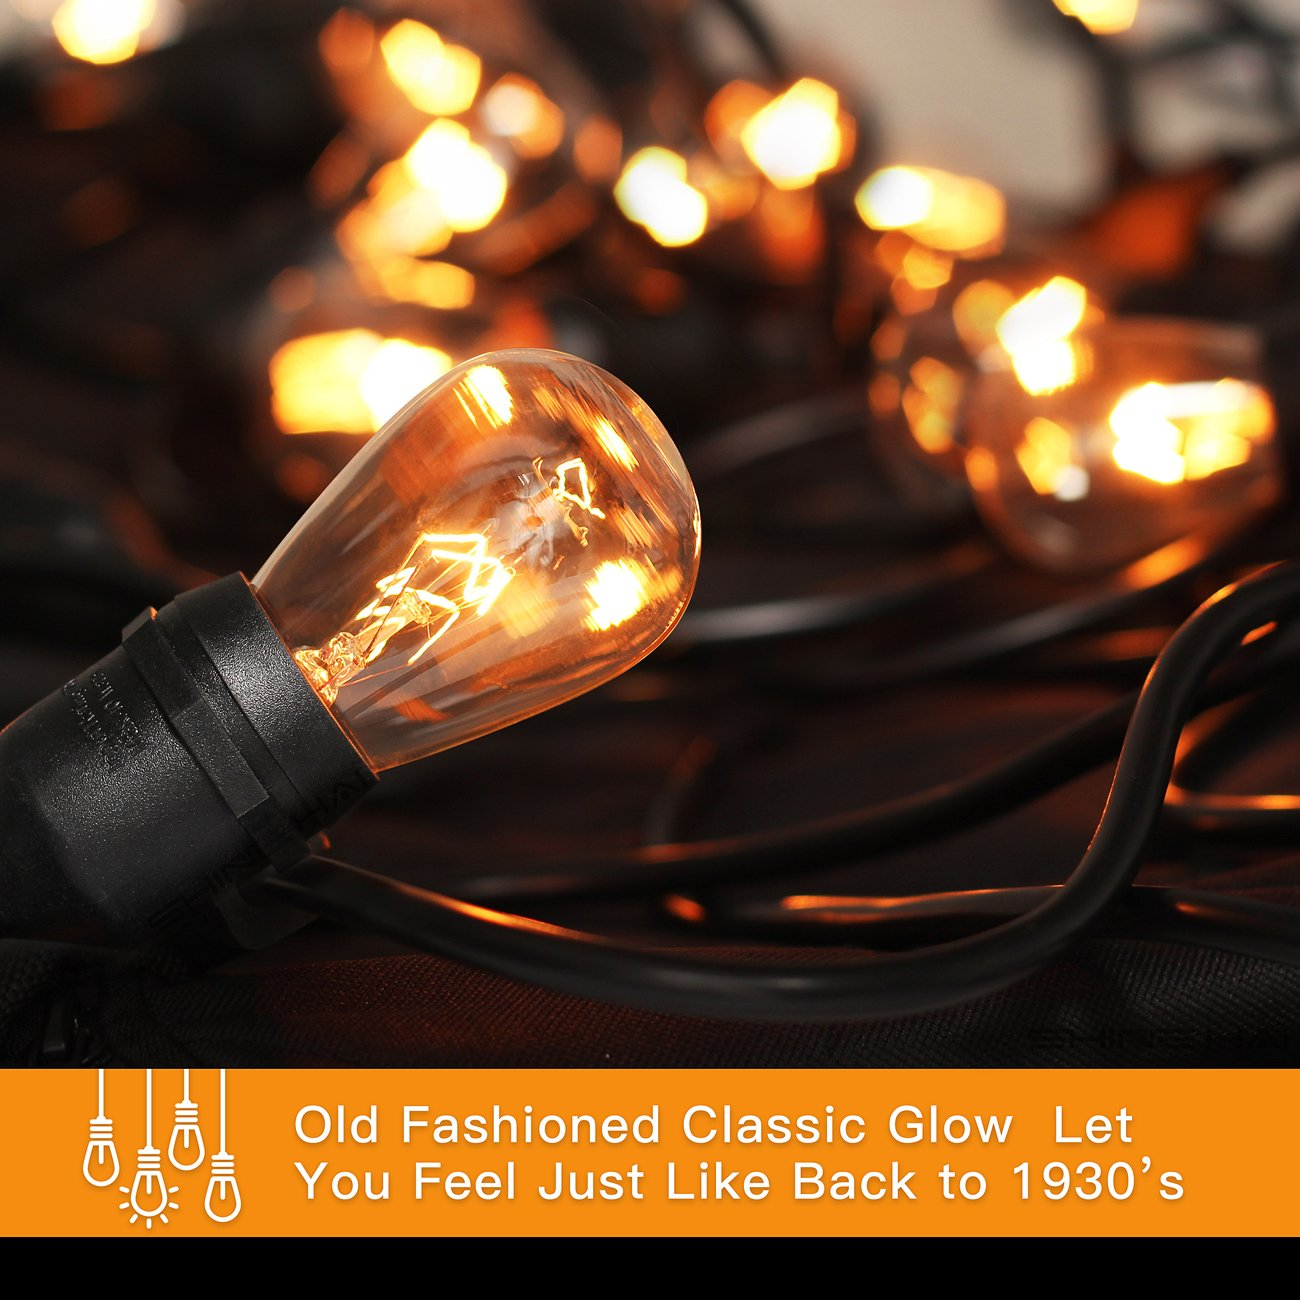 2-Pack 48Ft Heavy Duty Outdoor Patio String lights, Edison Vintage Dimmable 11S14 Bulbs w/ Hanging Sockets, Commercial Grade Weatherproof Market Cafe Lights for Bistro Backyard Pergola Party, Blk by SHINE HAI (Image #8)